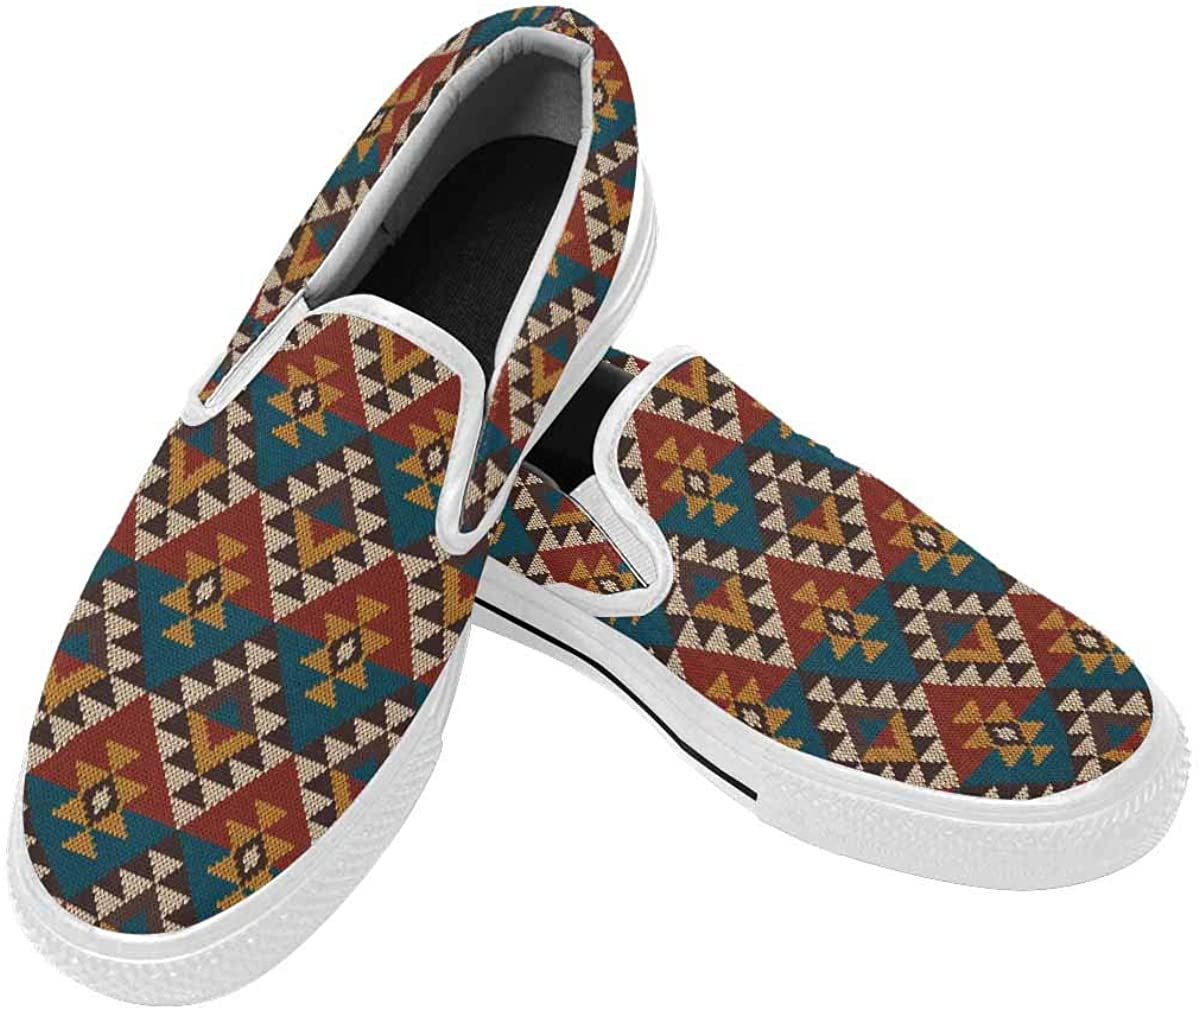 InterestPrint Men Loafers Slip on Sneakers Casual Comfort Lightweight Canvas Shoes Knit Aztec Tribal